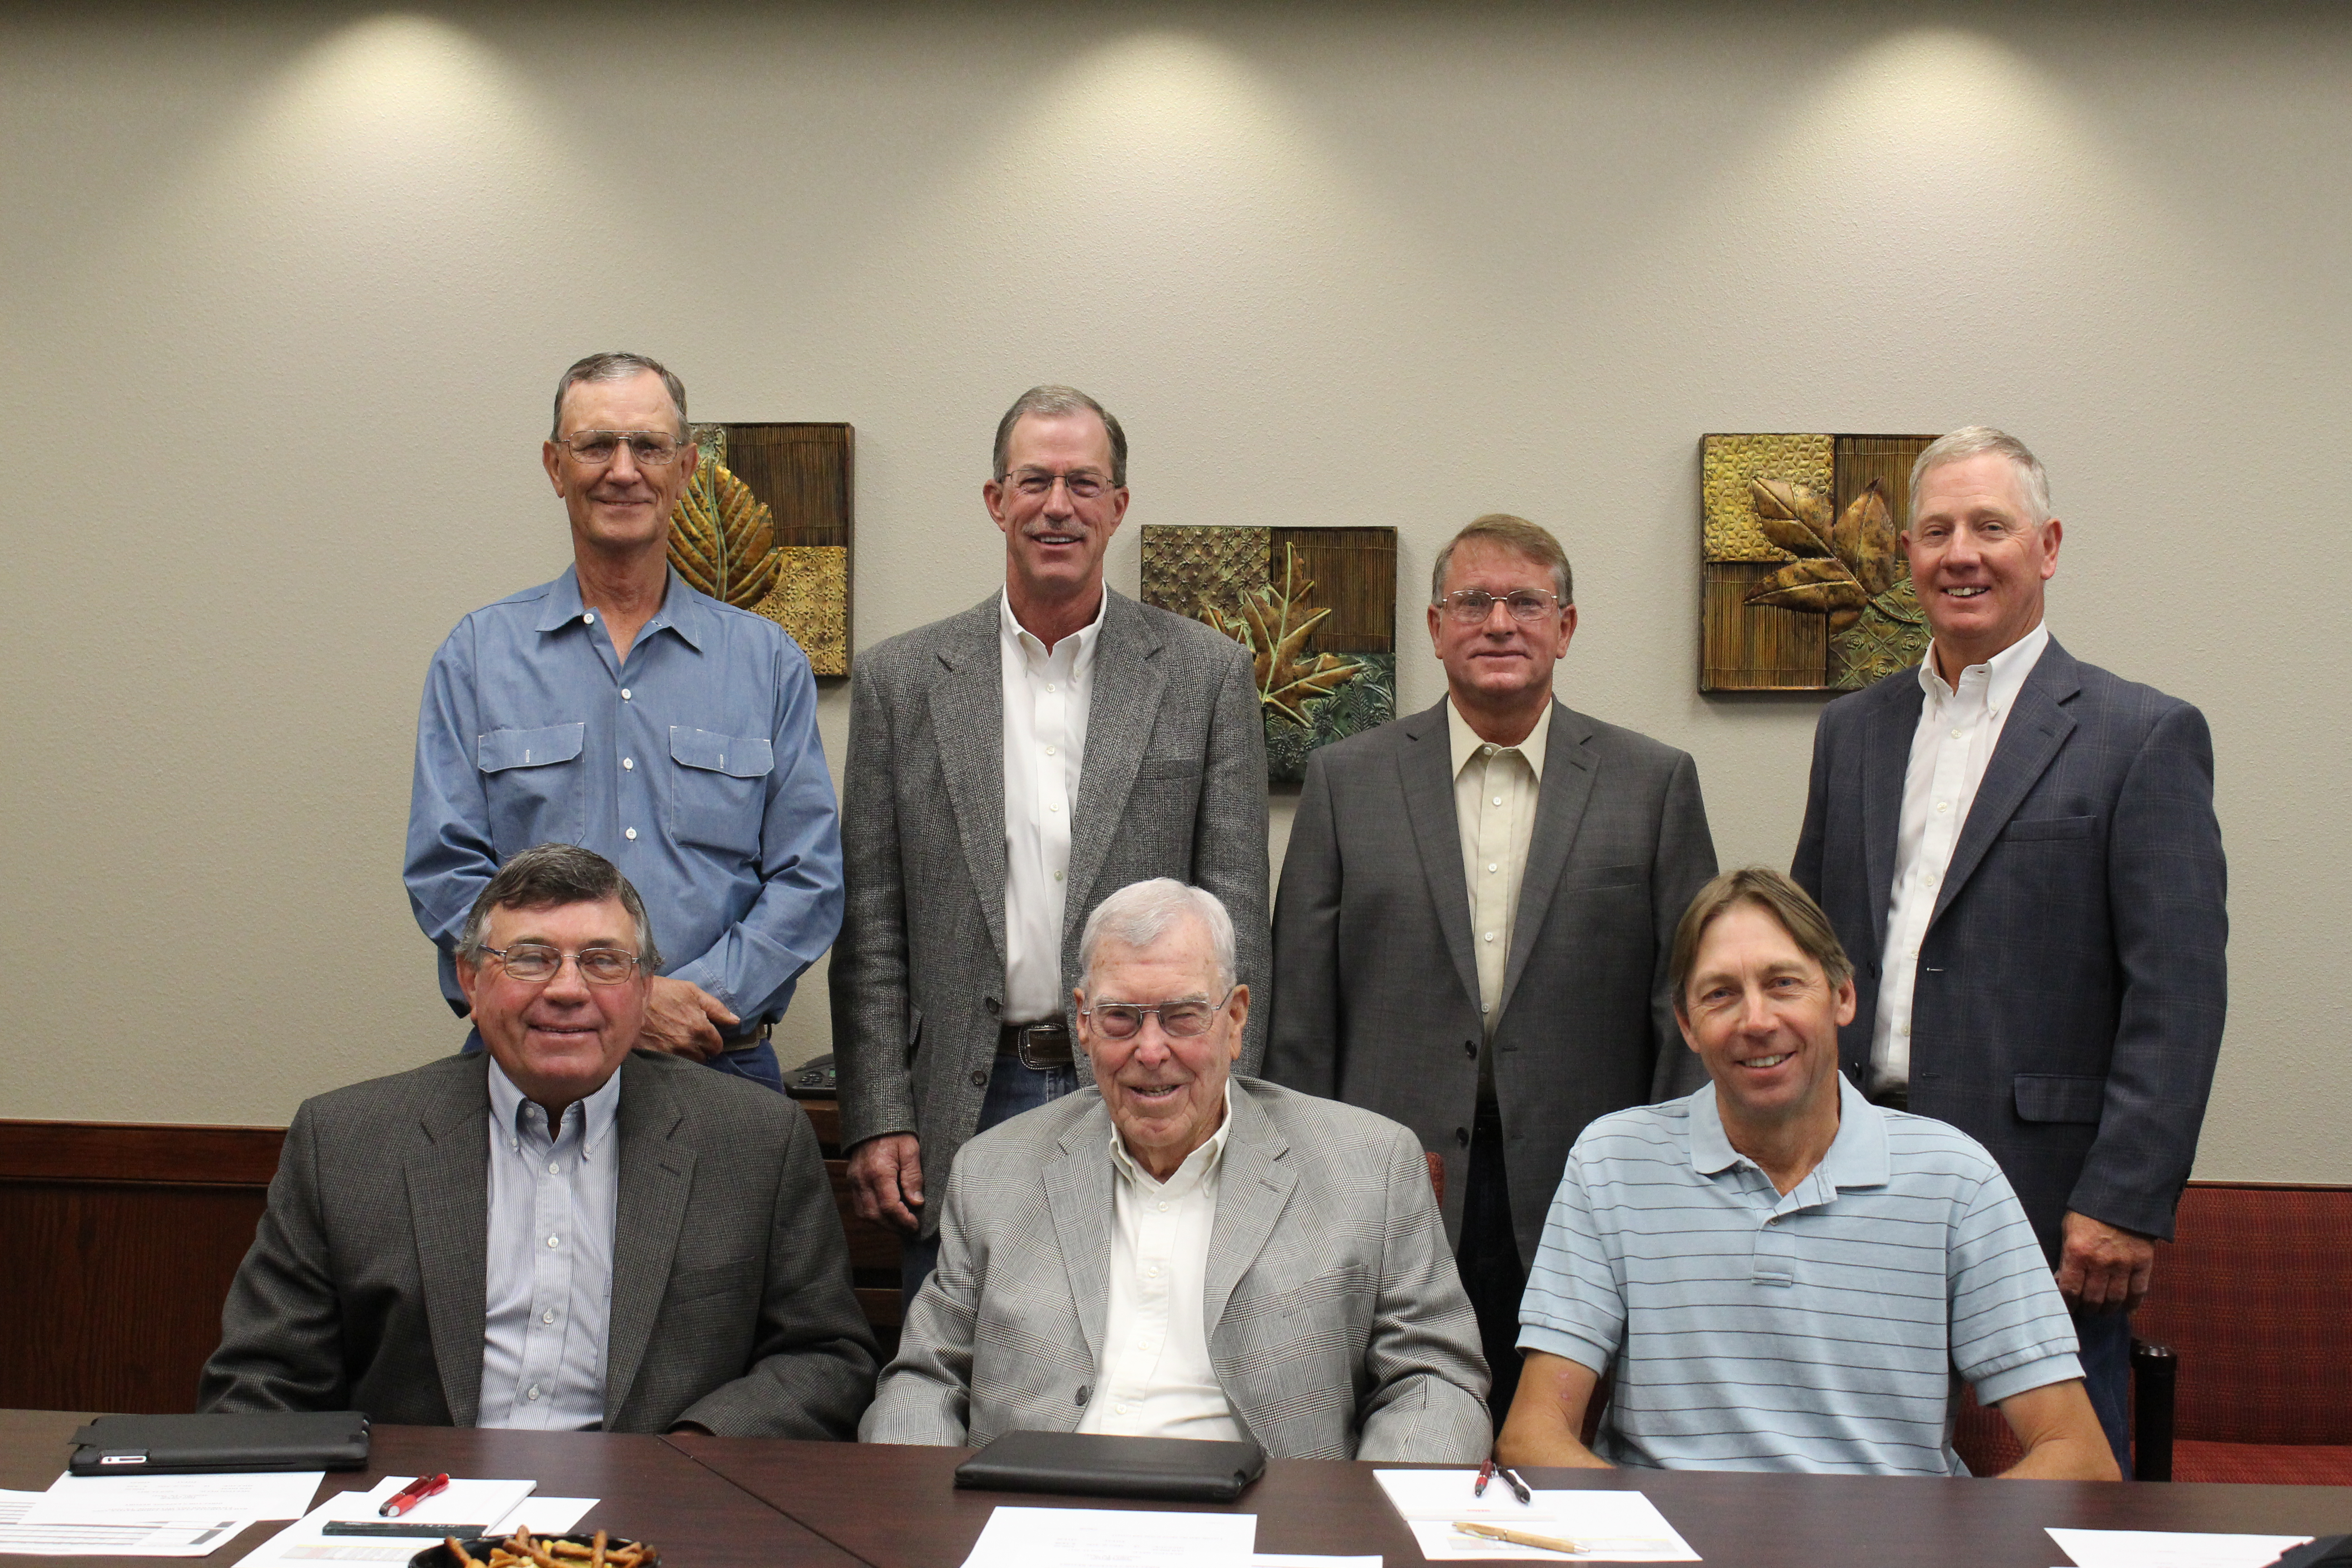 Group photo of the Bailey County Electric Board of Directors